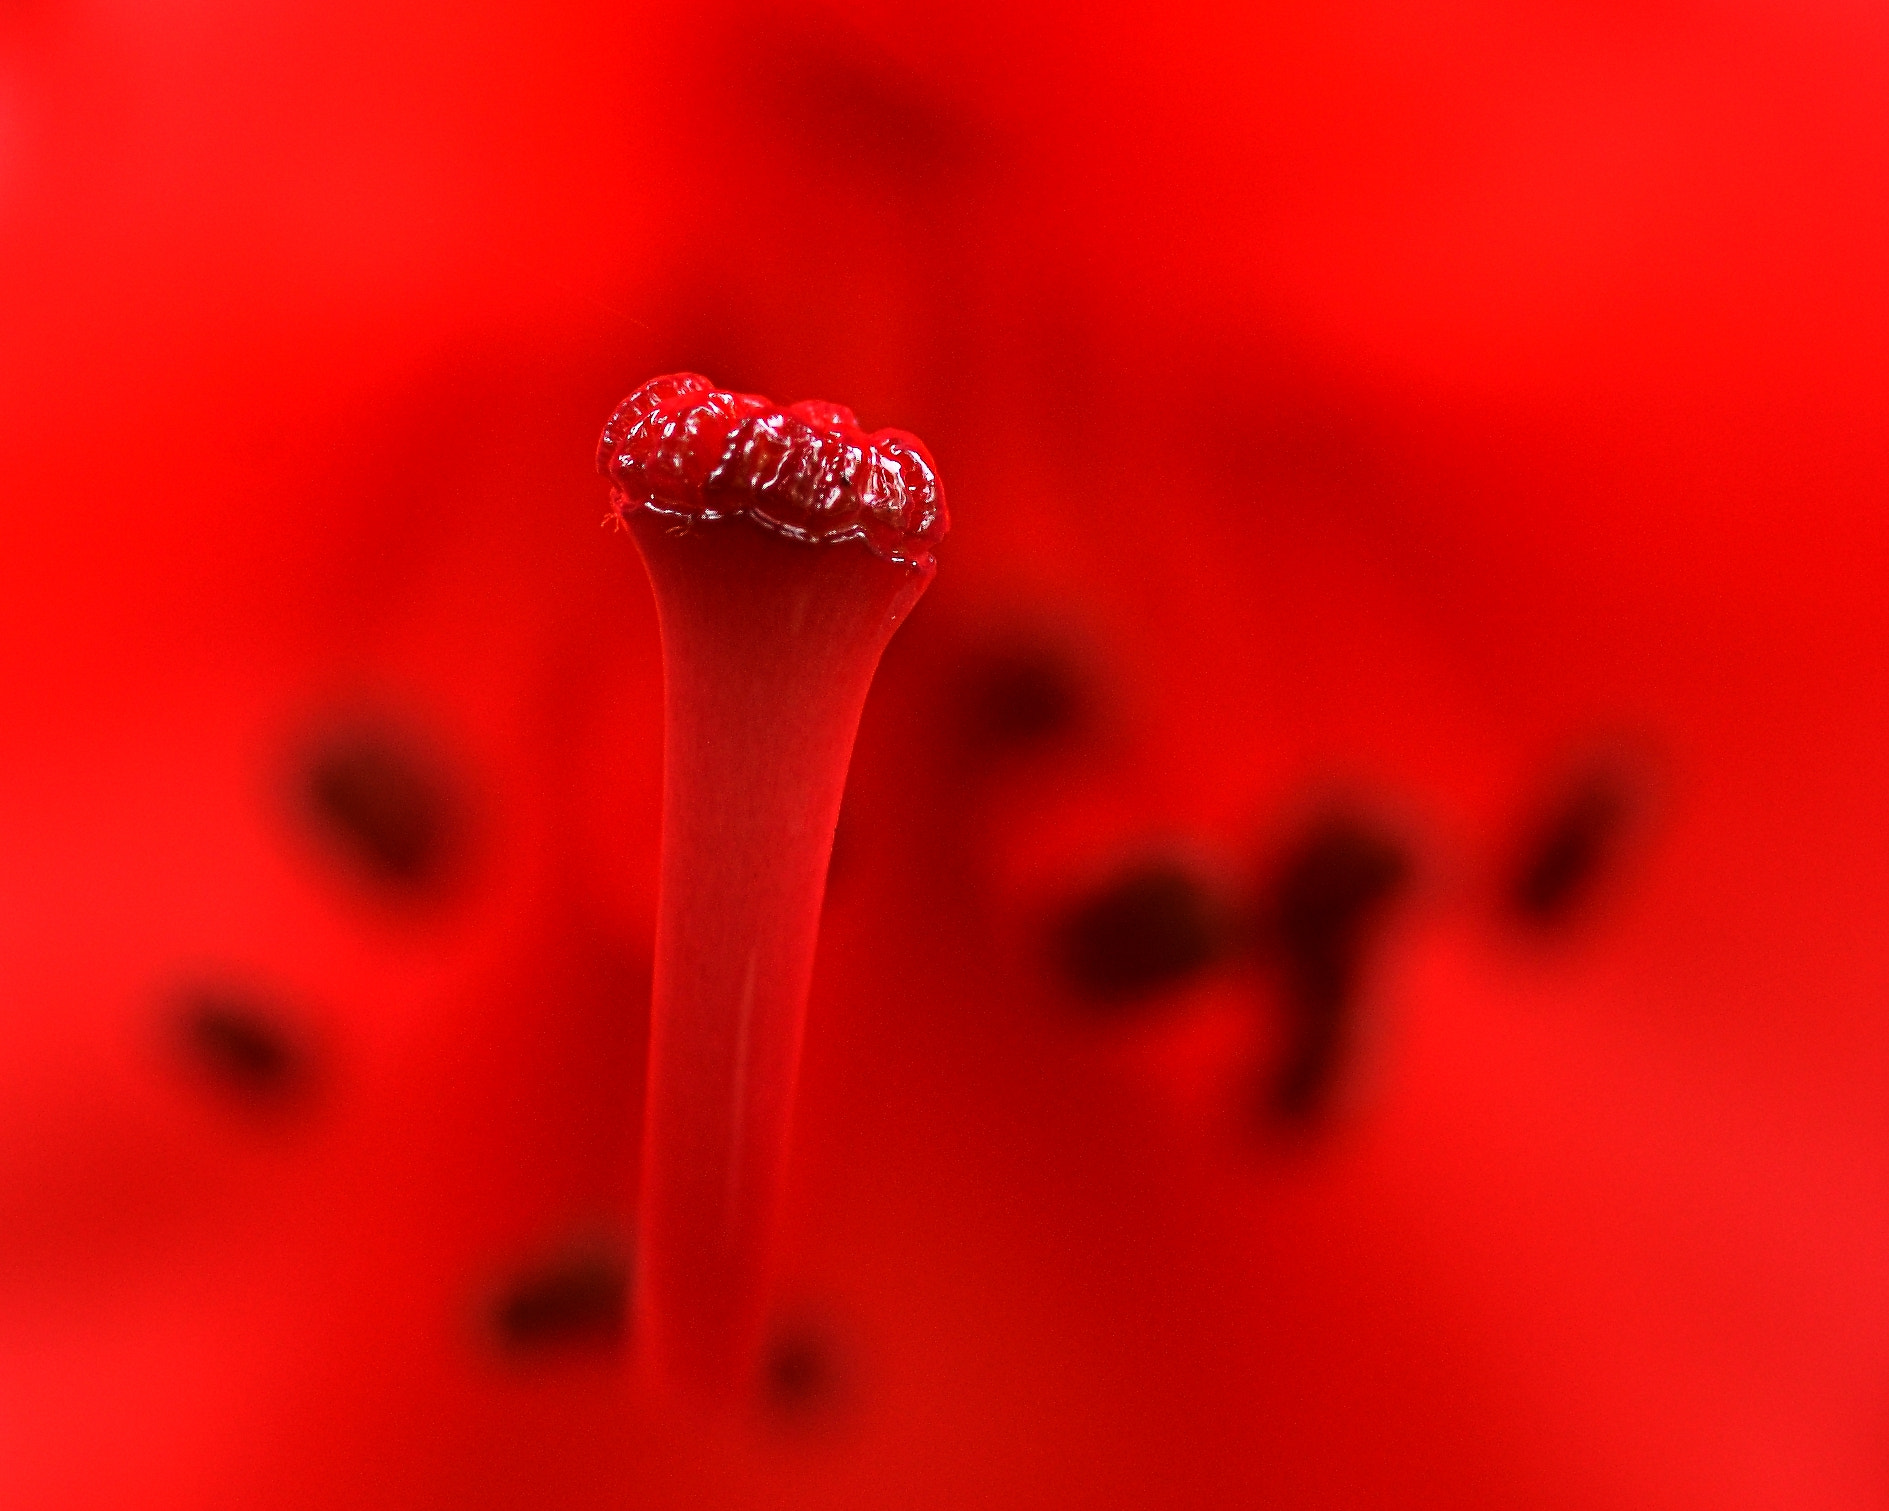 Photograph Red by Marc Koczwara on 500px